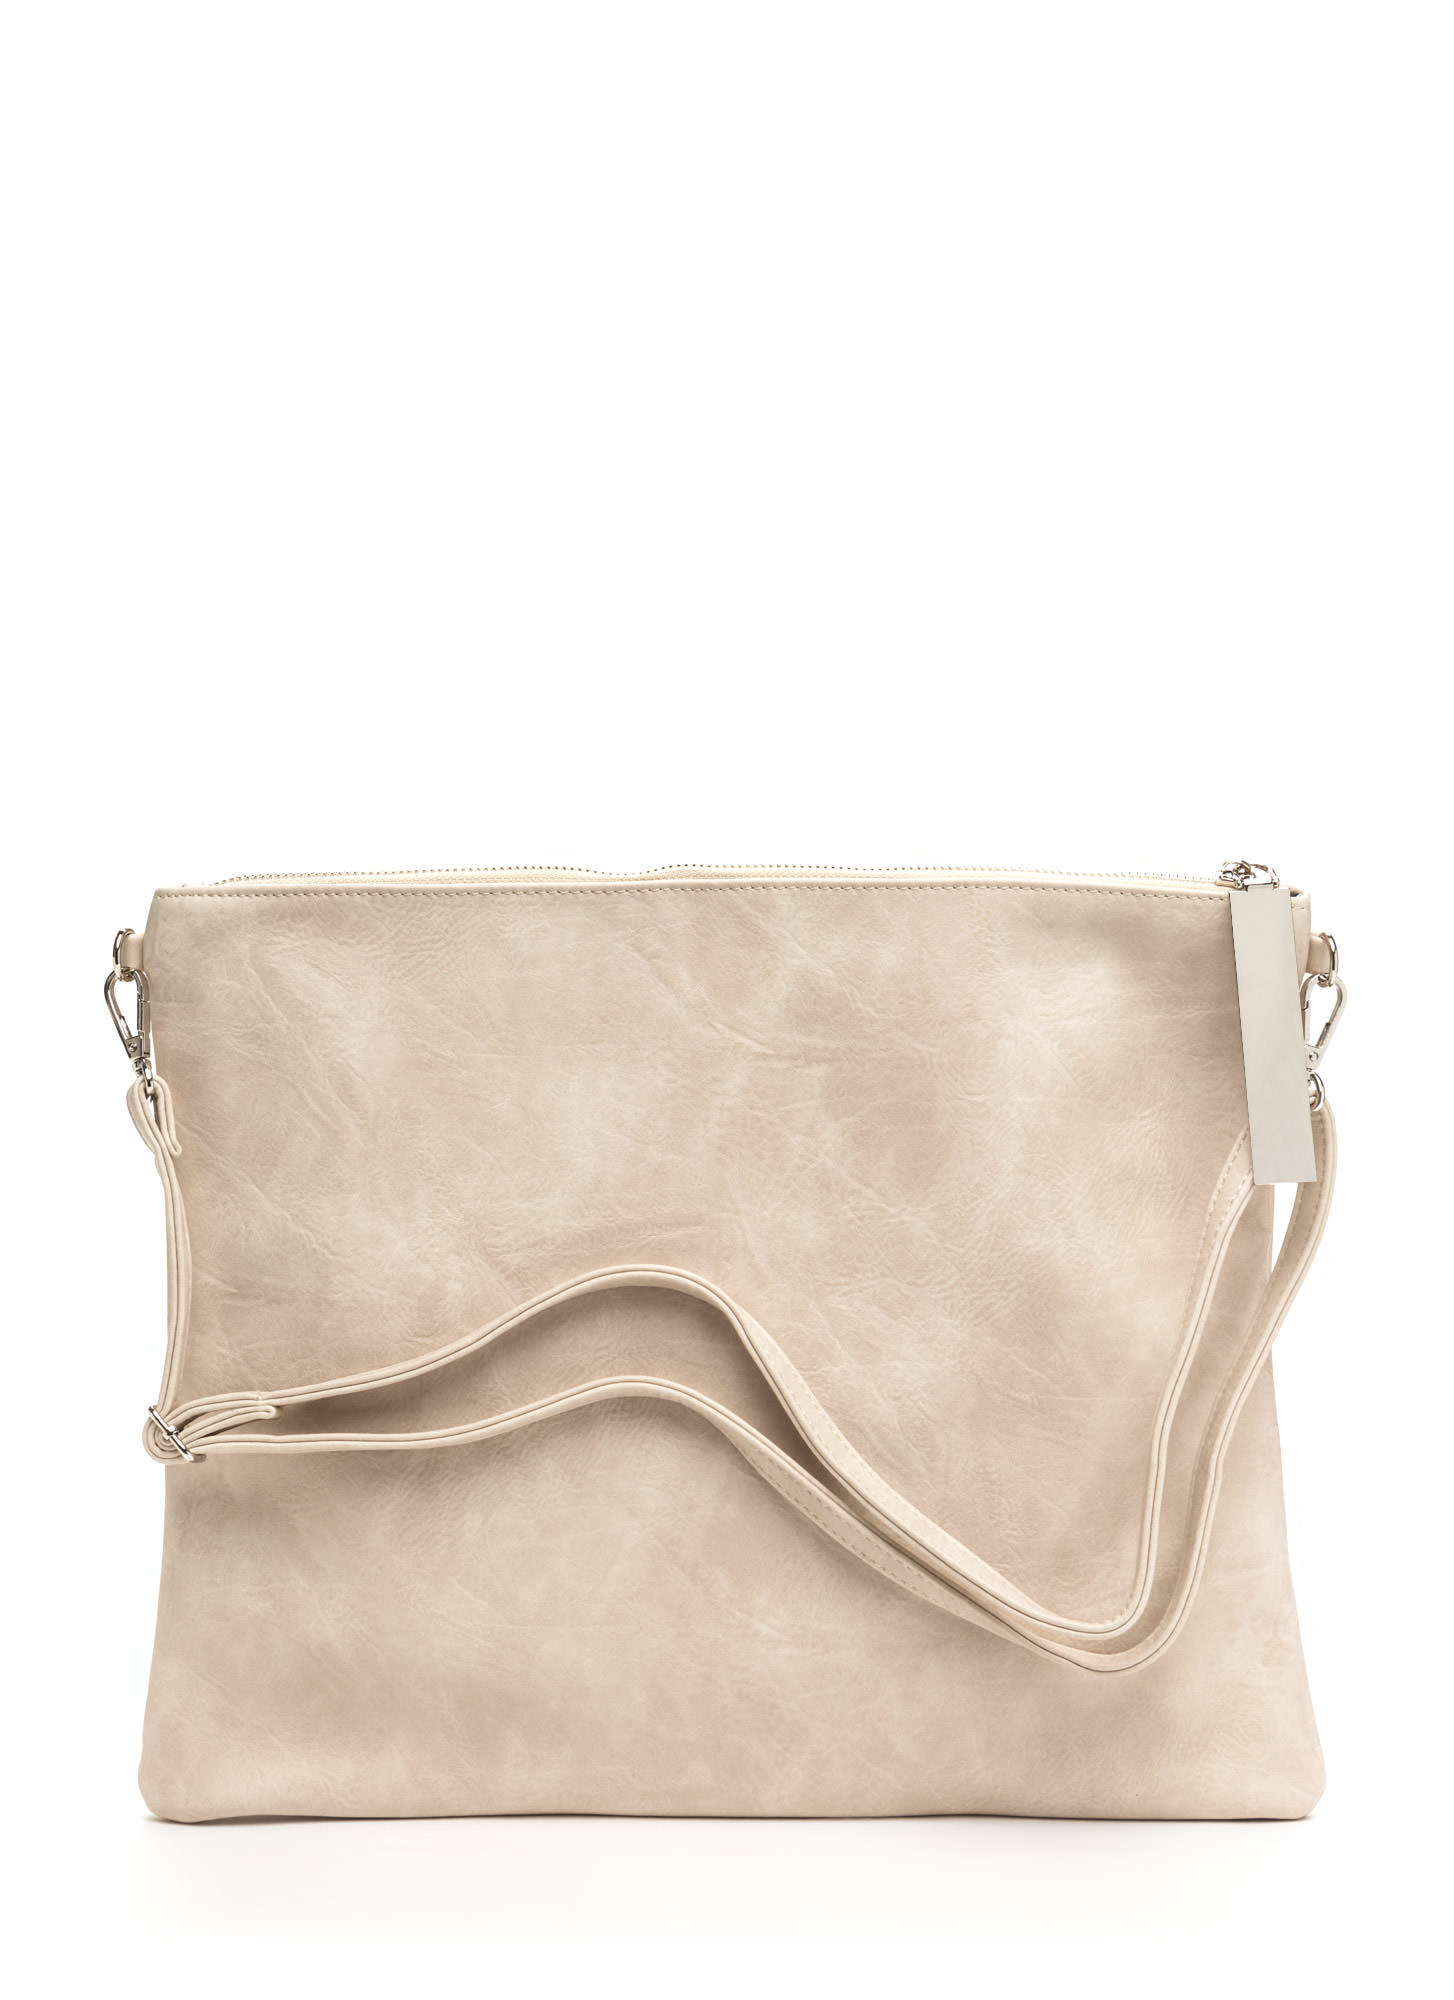 Arrive In Style Flat Oversized Clutch IVORY